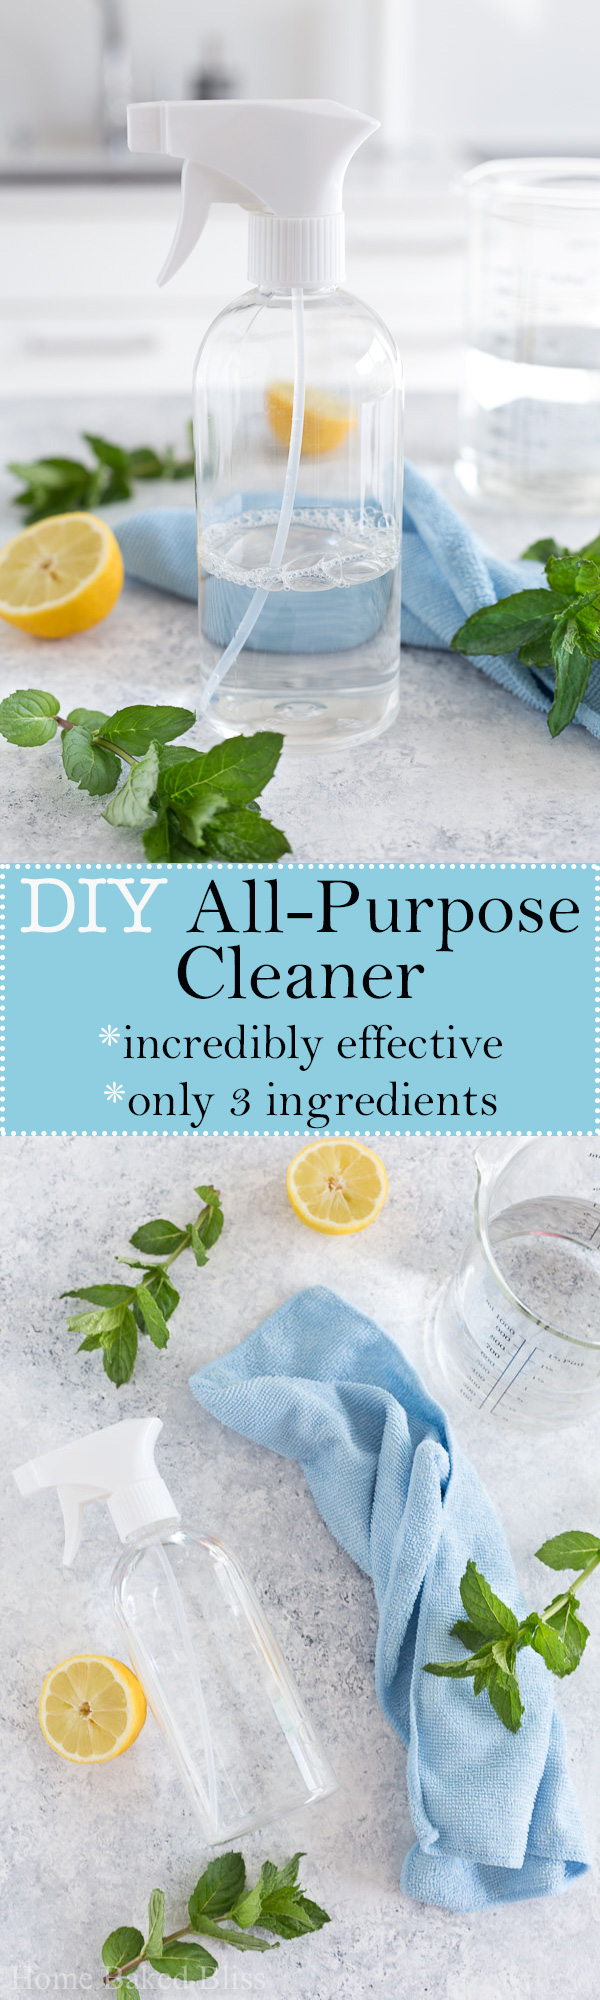 This diy all-purpose cleaner removes even the toughest water stains, dirt and grim! Get the 3 ingredient recipe.